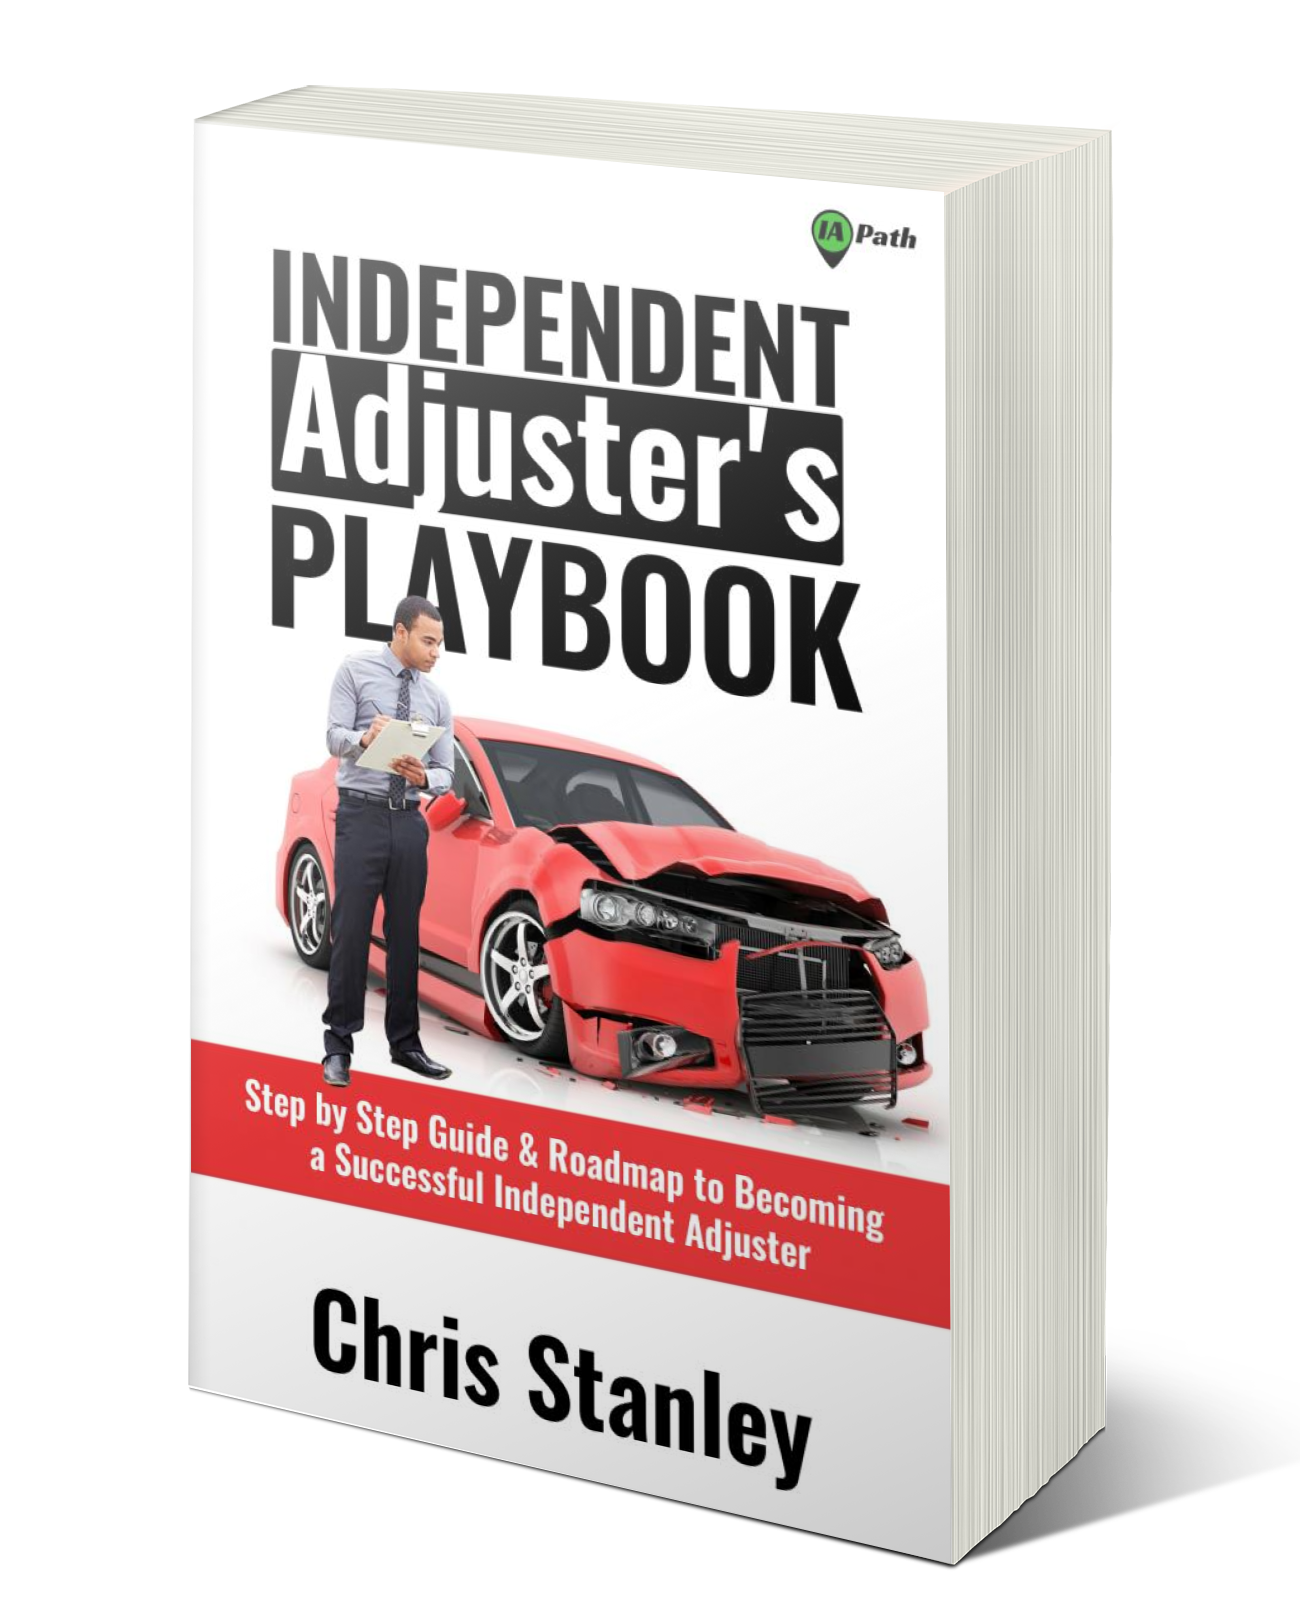 Independent Adjuster's Playbook